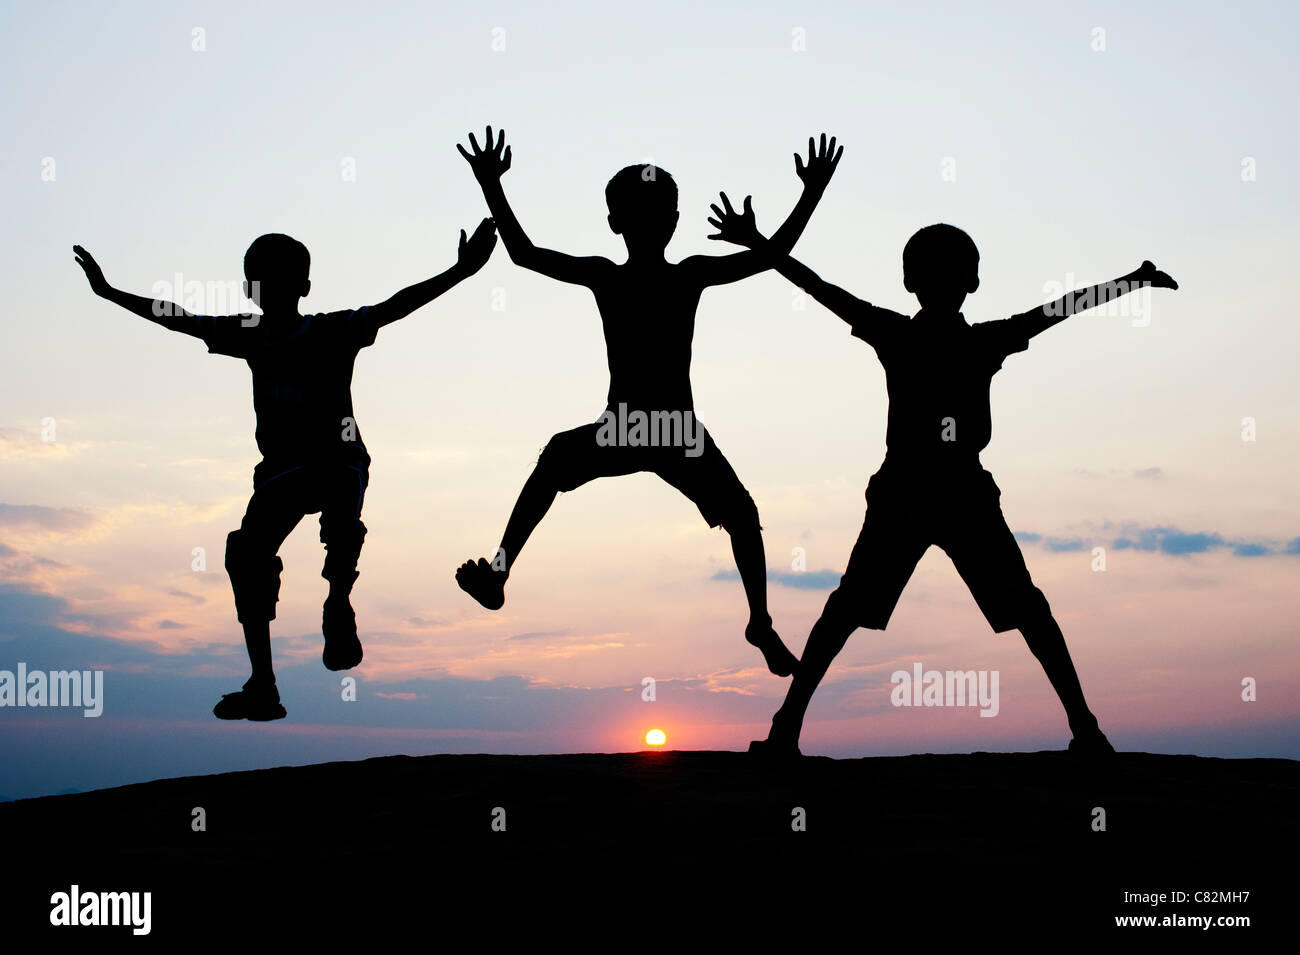 Silhouette of young Indian boys jumping against at sunset. India - Stock Image